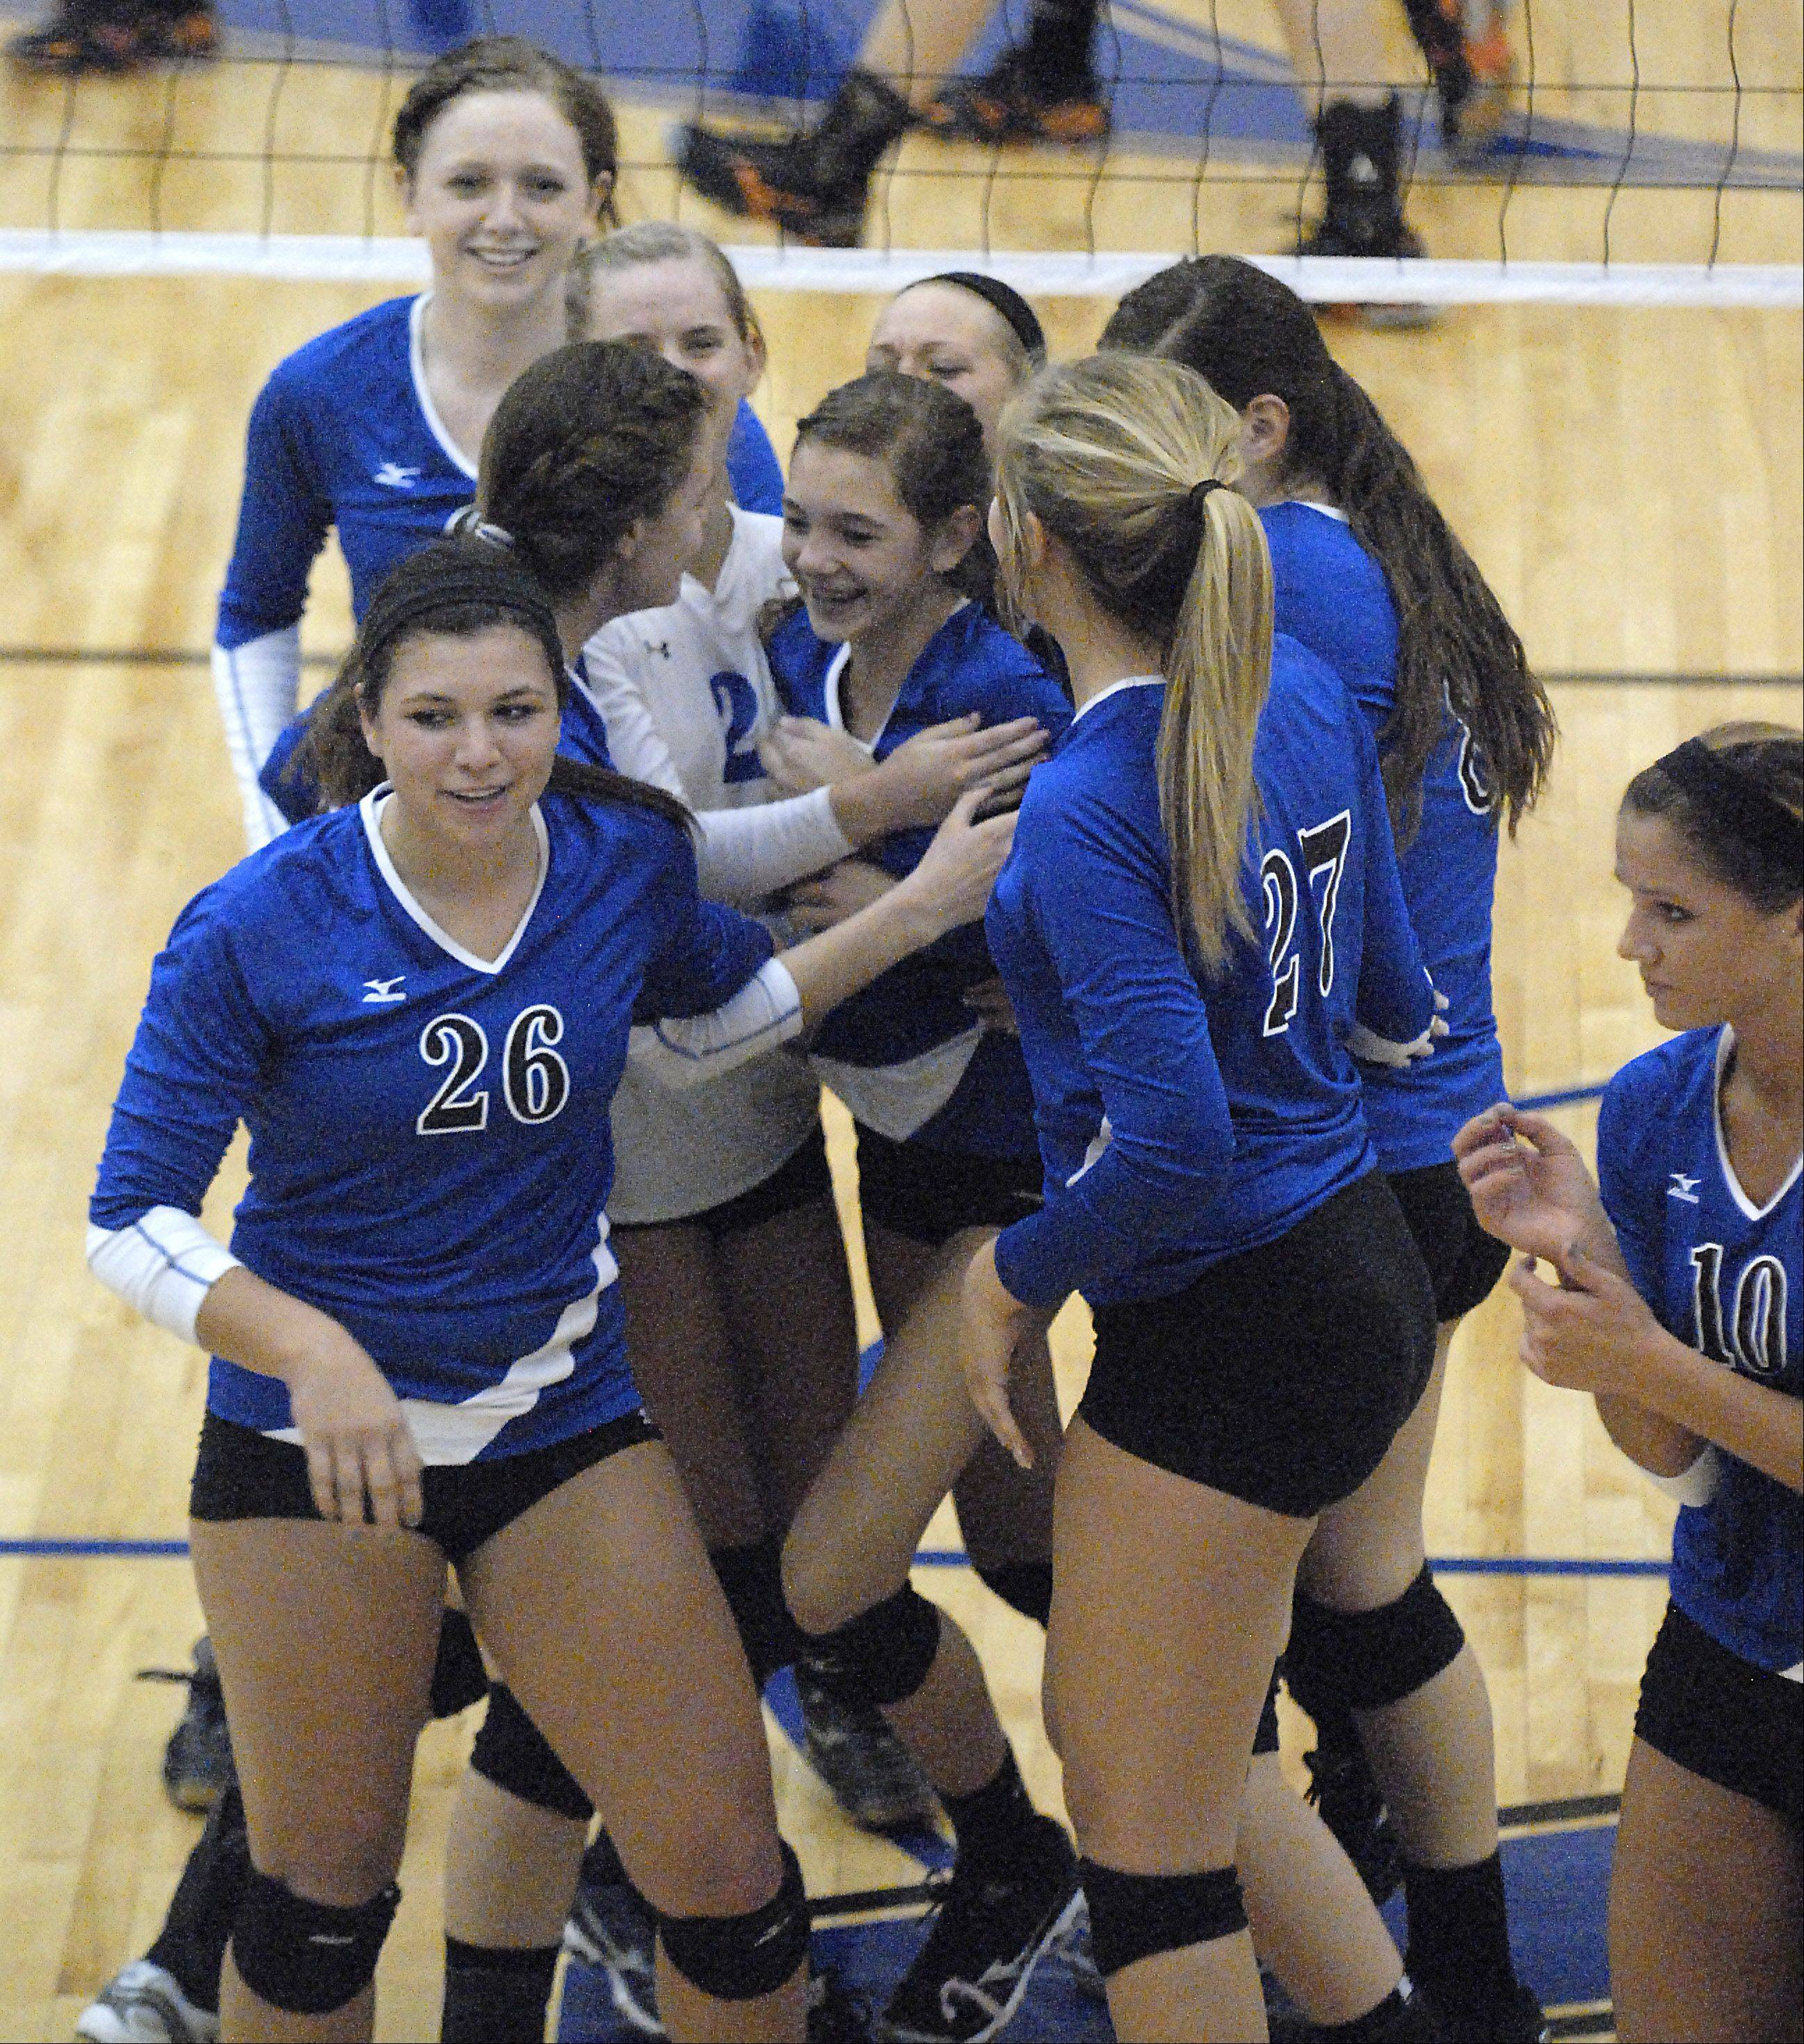 Laura Stoecker/lstoecker@dailyherald.comGeneva's Kelsey Wicinski is swarmed by teammates after the Vikings win game two over St. Charles East to even up the score on Tuesday, October 16.